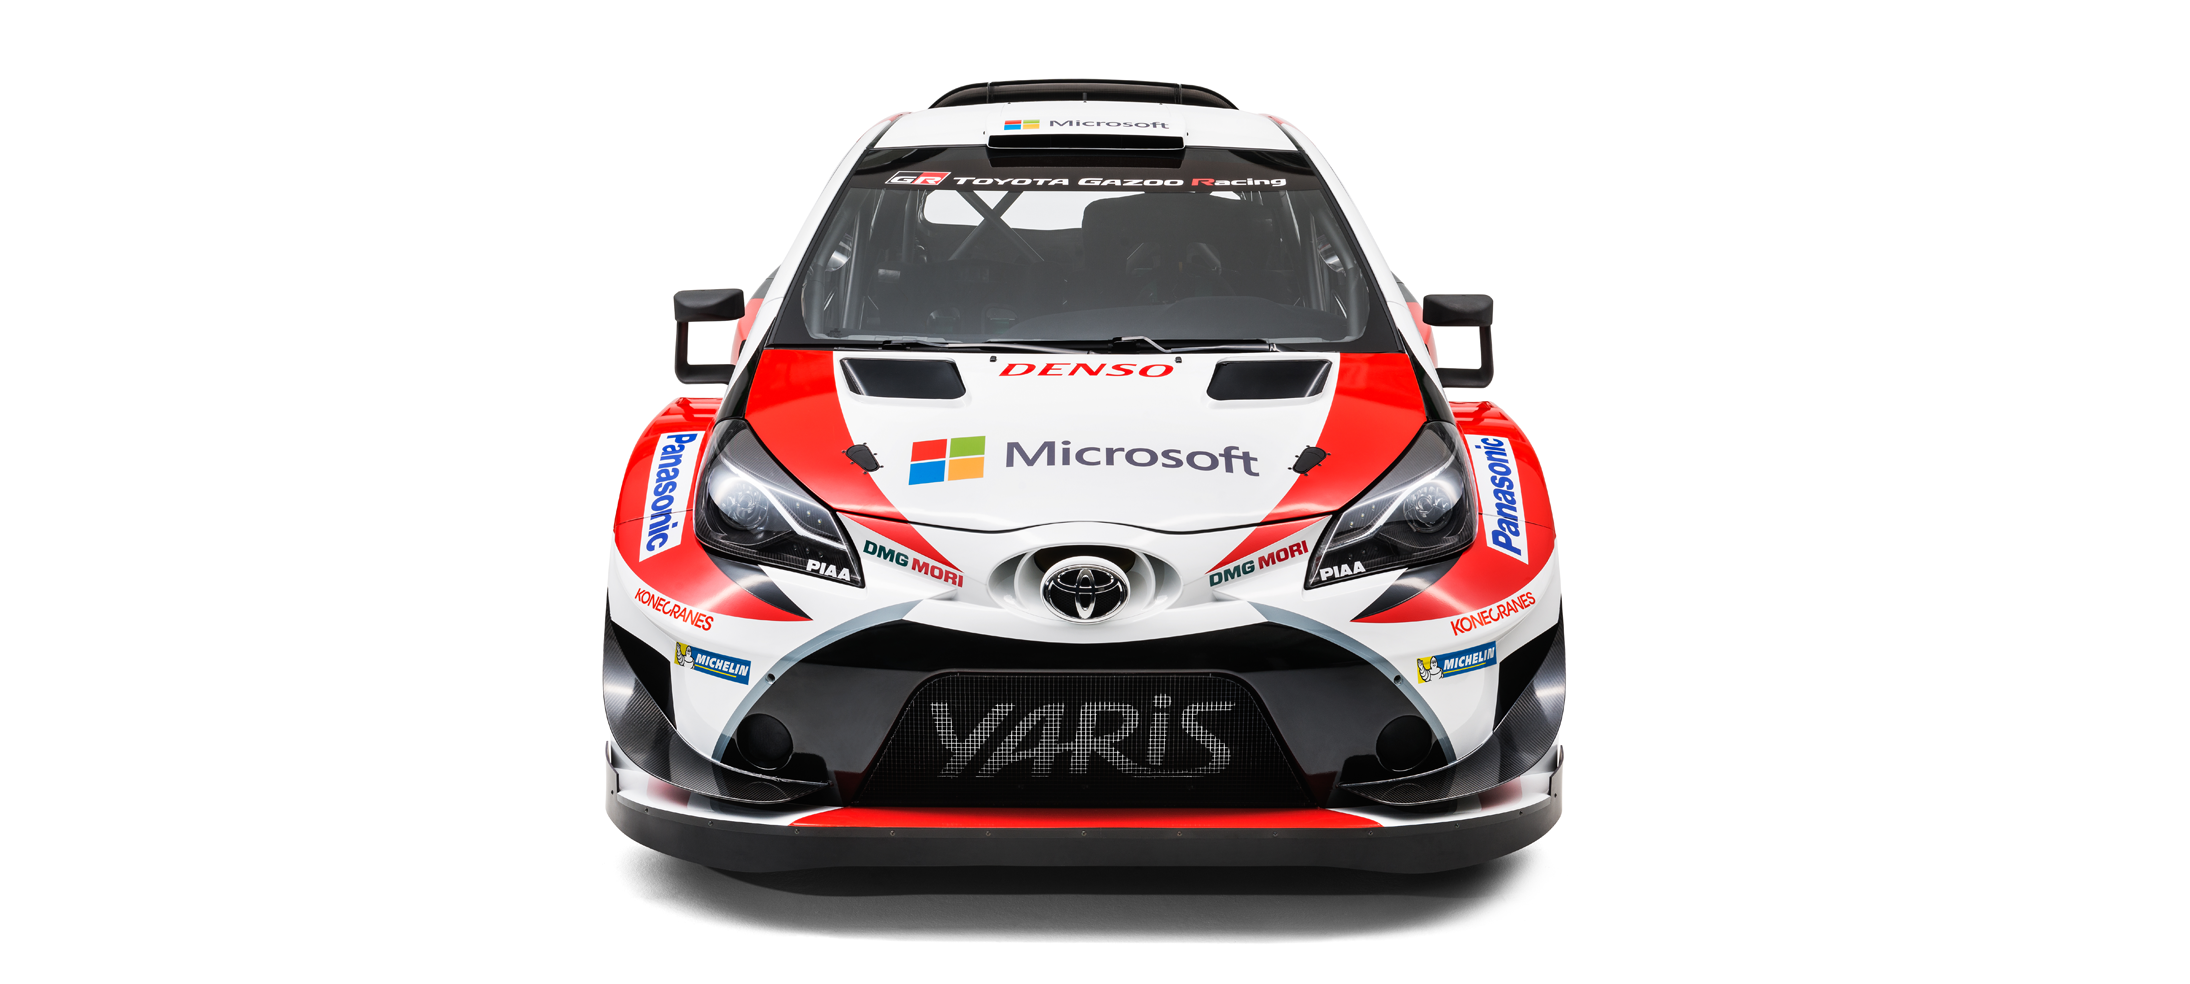 car details wrc wrc toyota gazoo racing. Black Bedroom Furniture Sets. Home Design Ideas